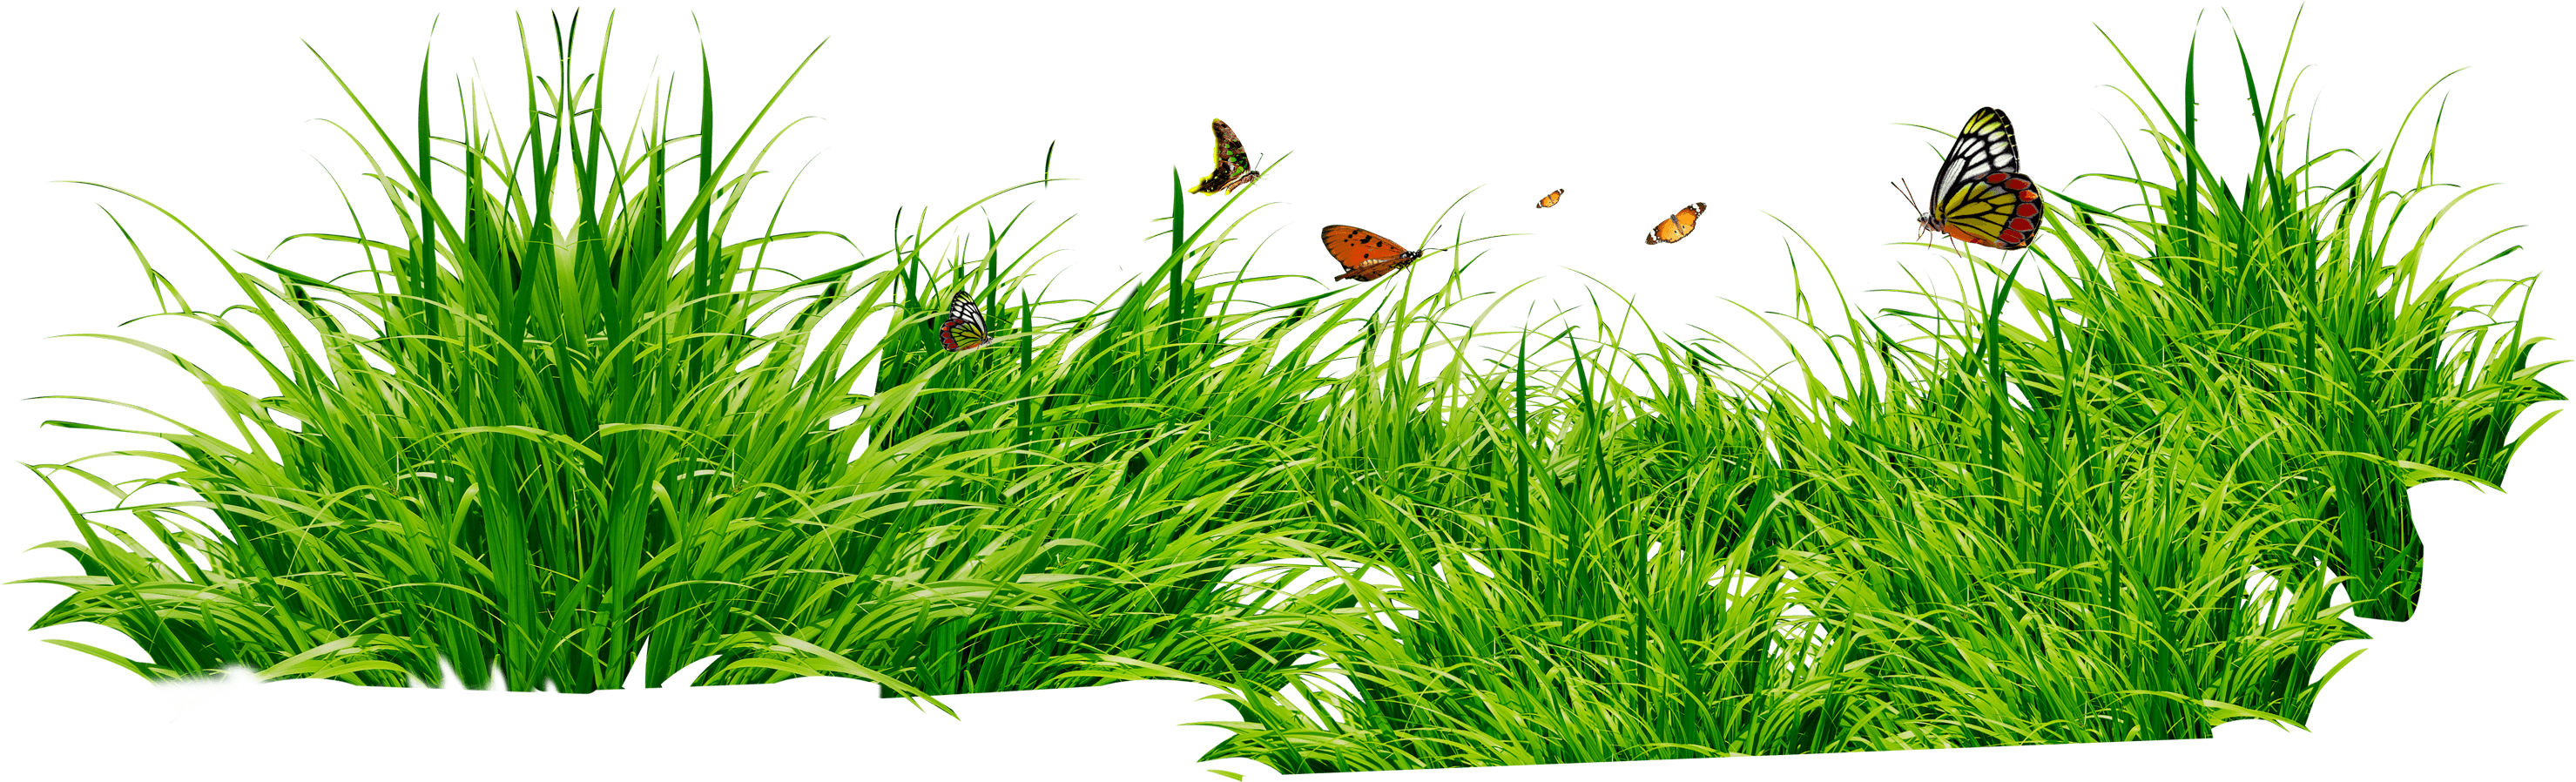 Grass Patch With Insects PNG Image